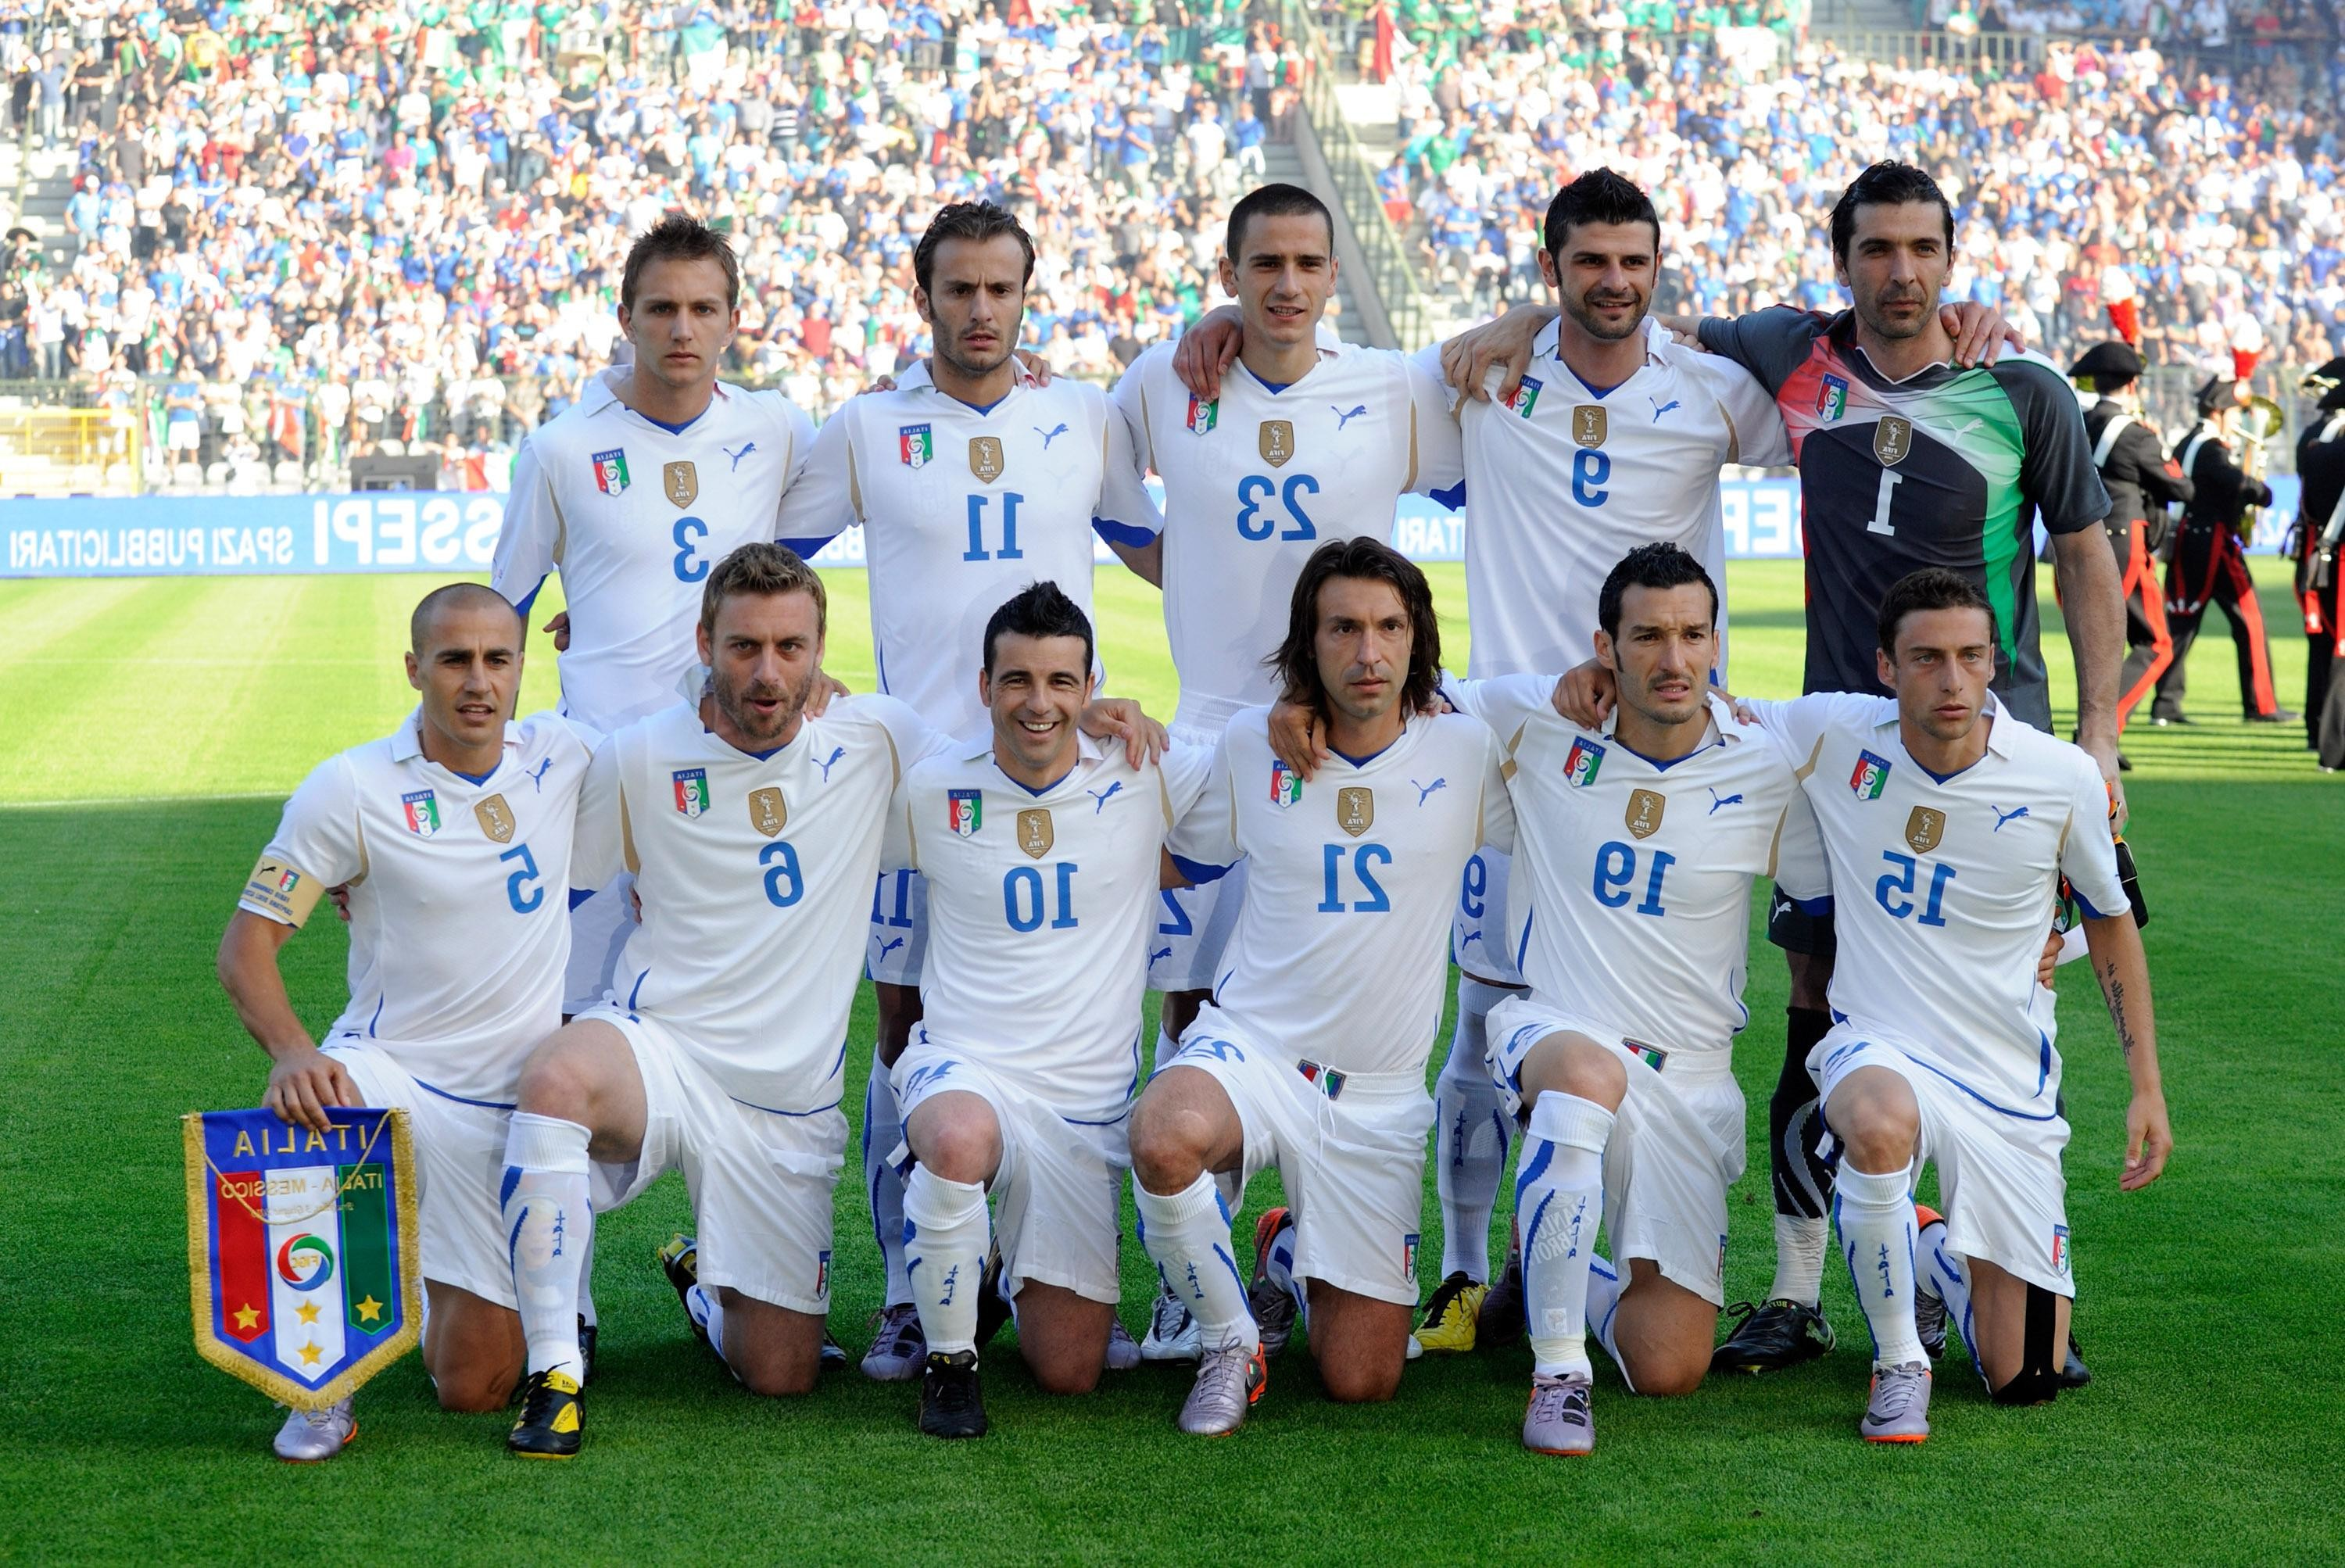 3000x2006 italy national football team sport hd wallpapers windows wallpapers hd  download free cool background images mac tablet 3000×2006 Wallpaper HD